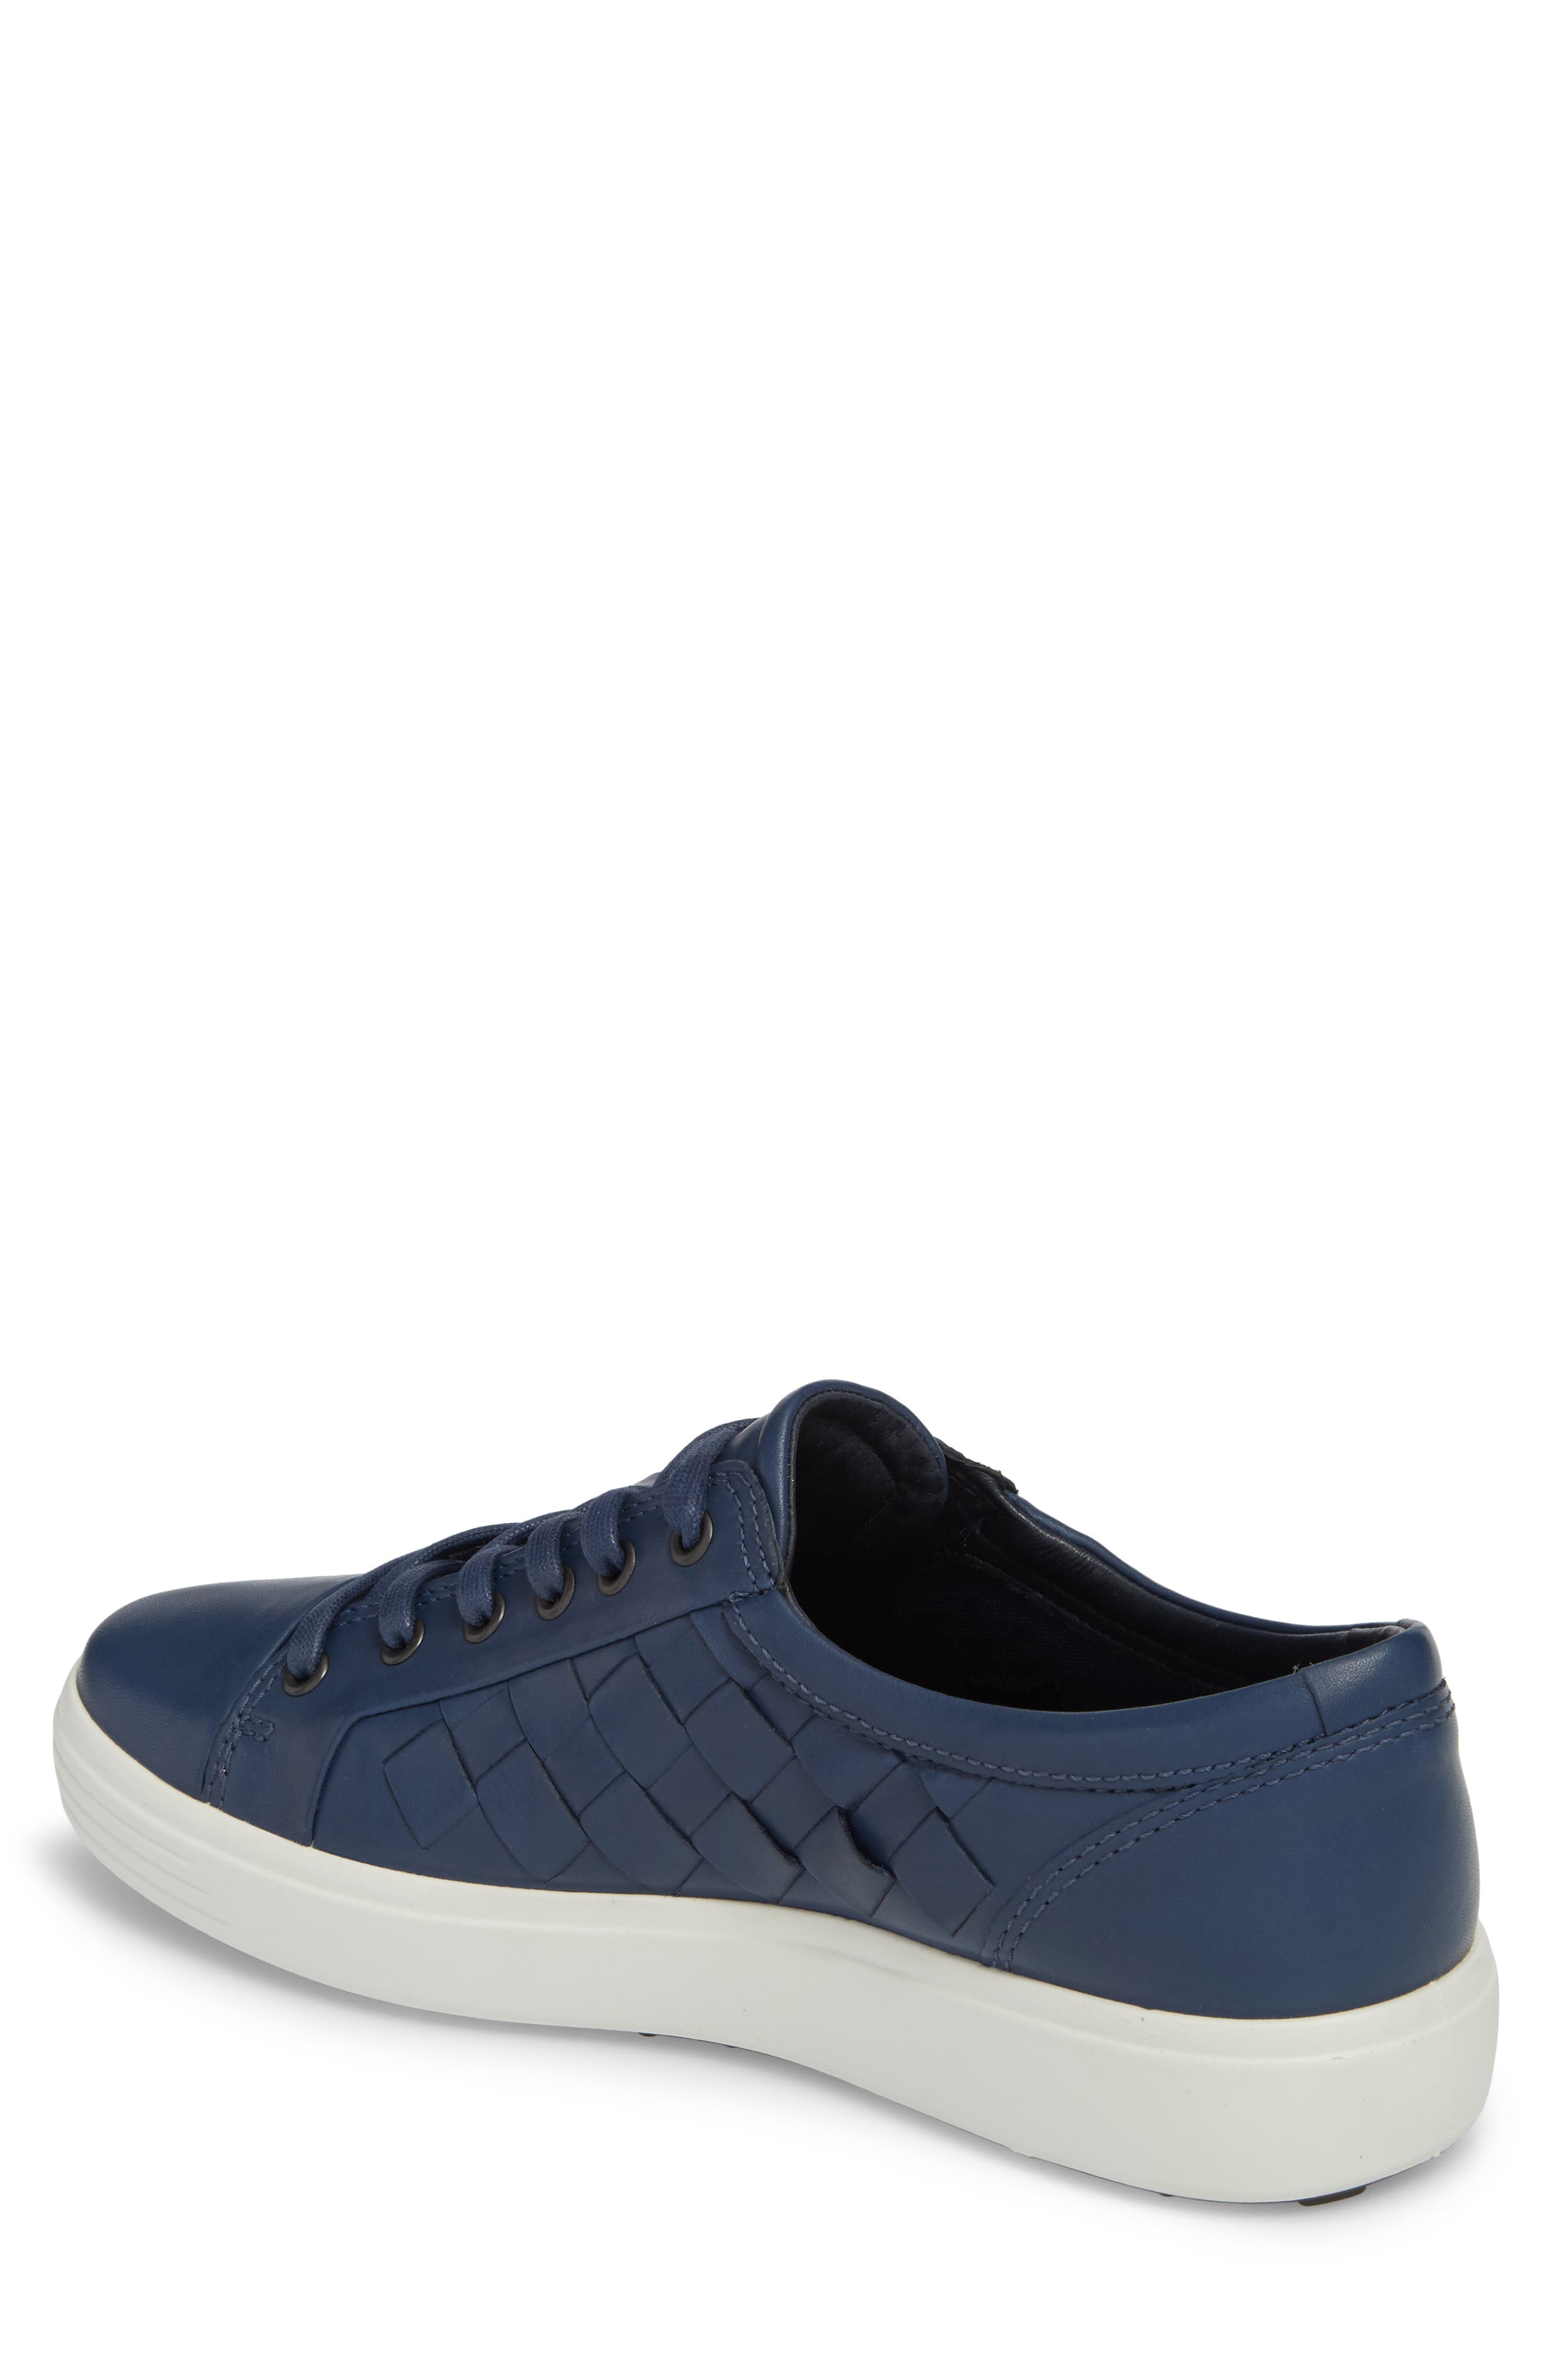 Soft 7 Woven Sneaker,                             Alternate thumbnail 2, color,                             True Navy Leather